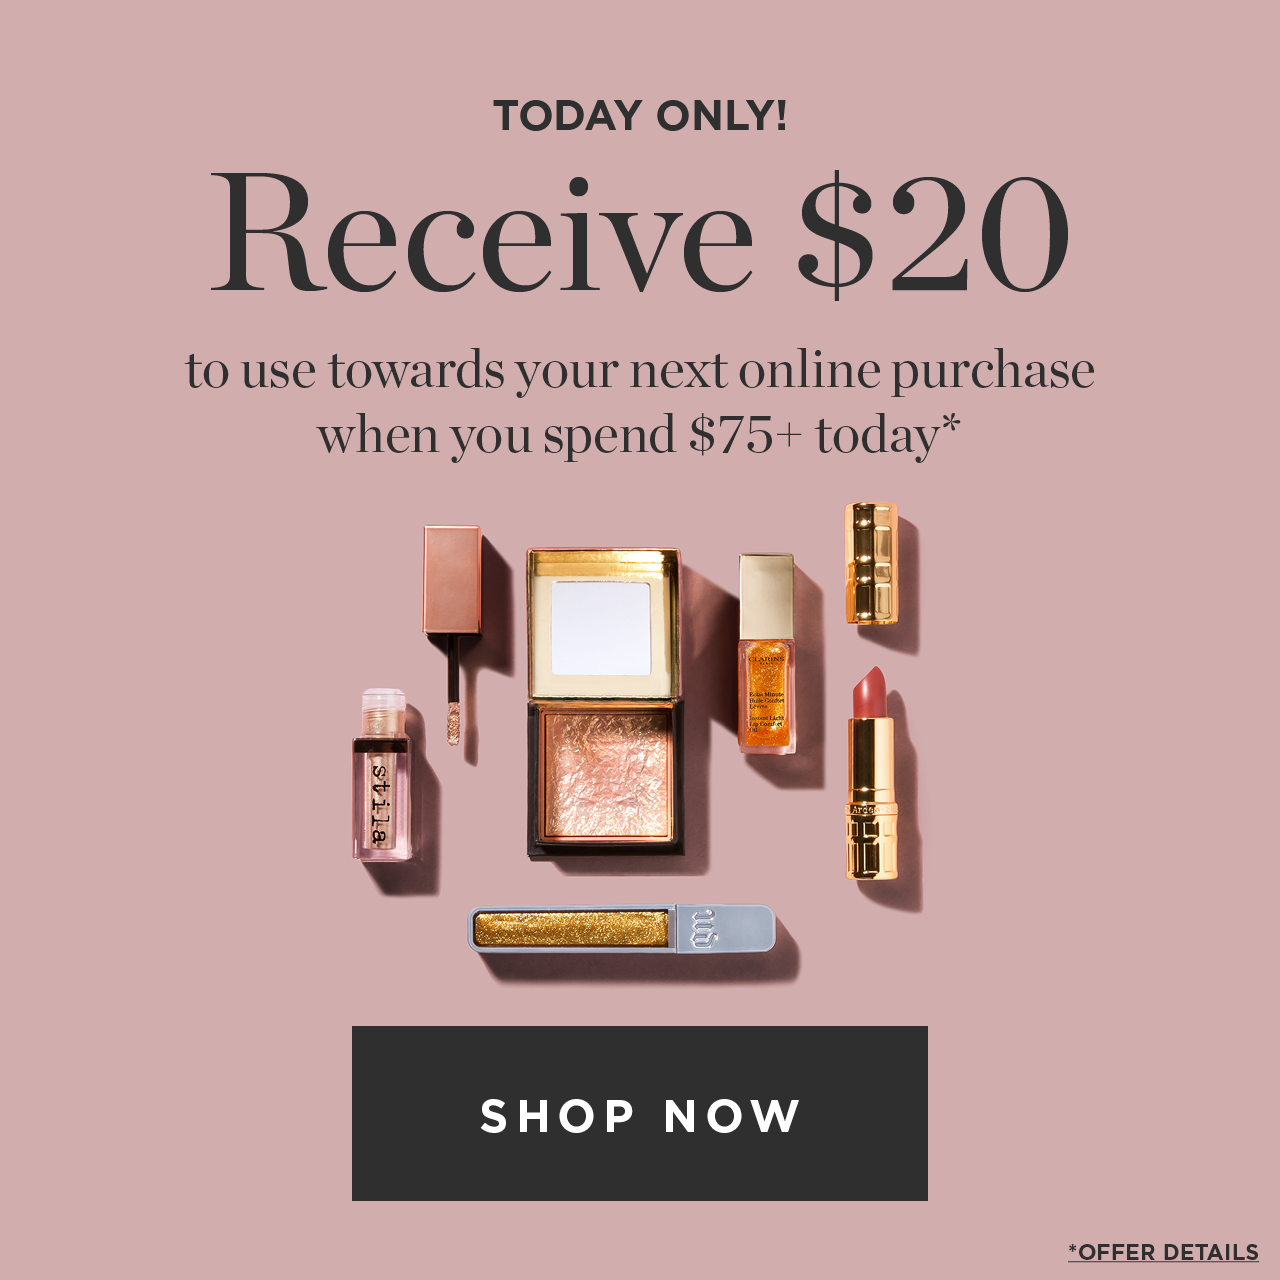 Today only! Receive $20 to use towards your next online purchase when you spend $75+ today